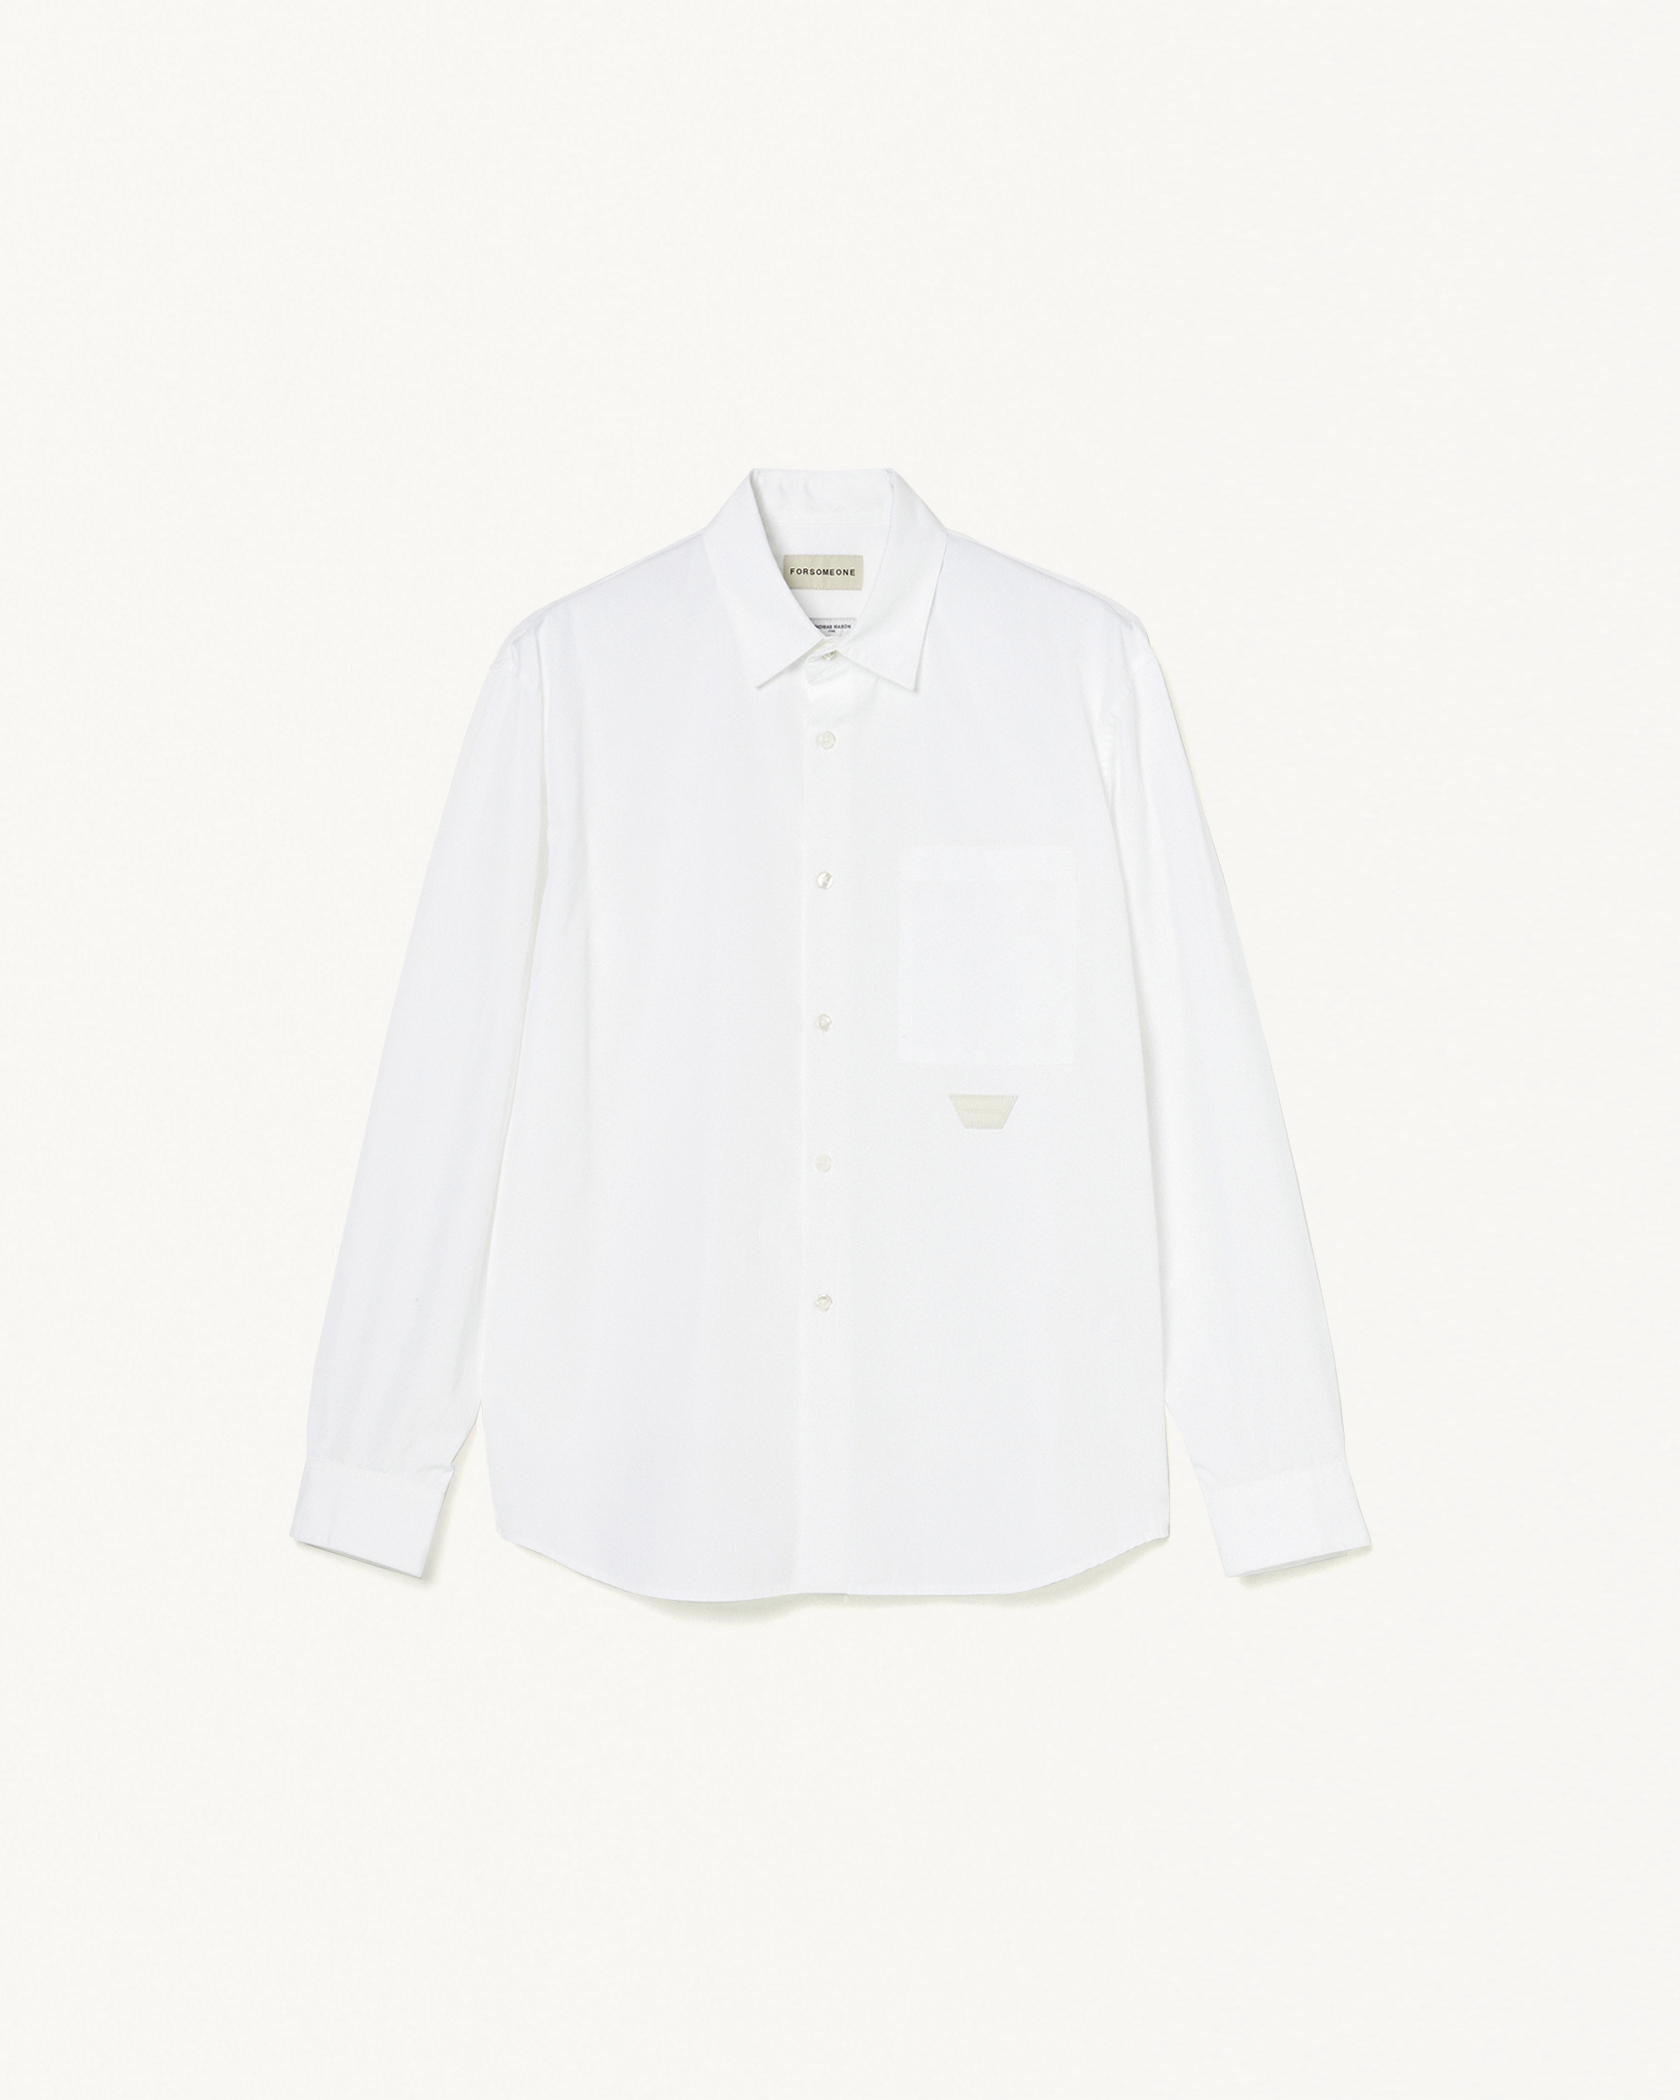 THOMAS BROAD SHIRT 詳細画像 Beige 7